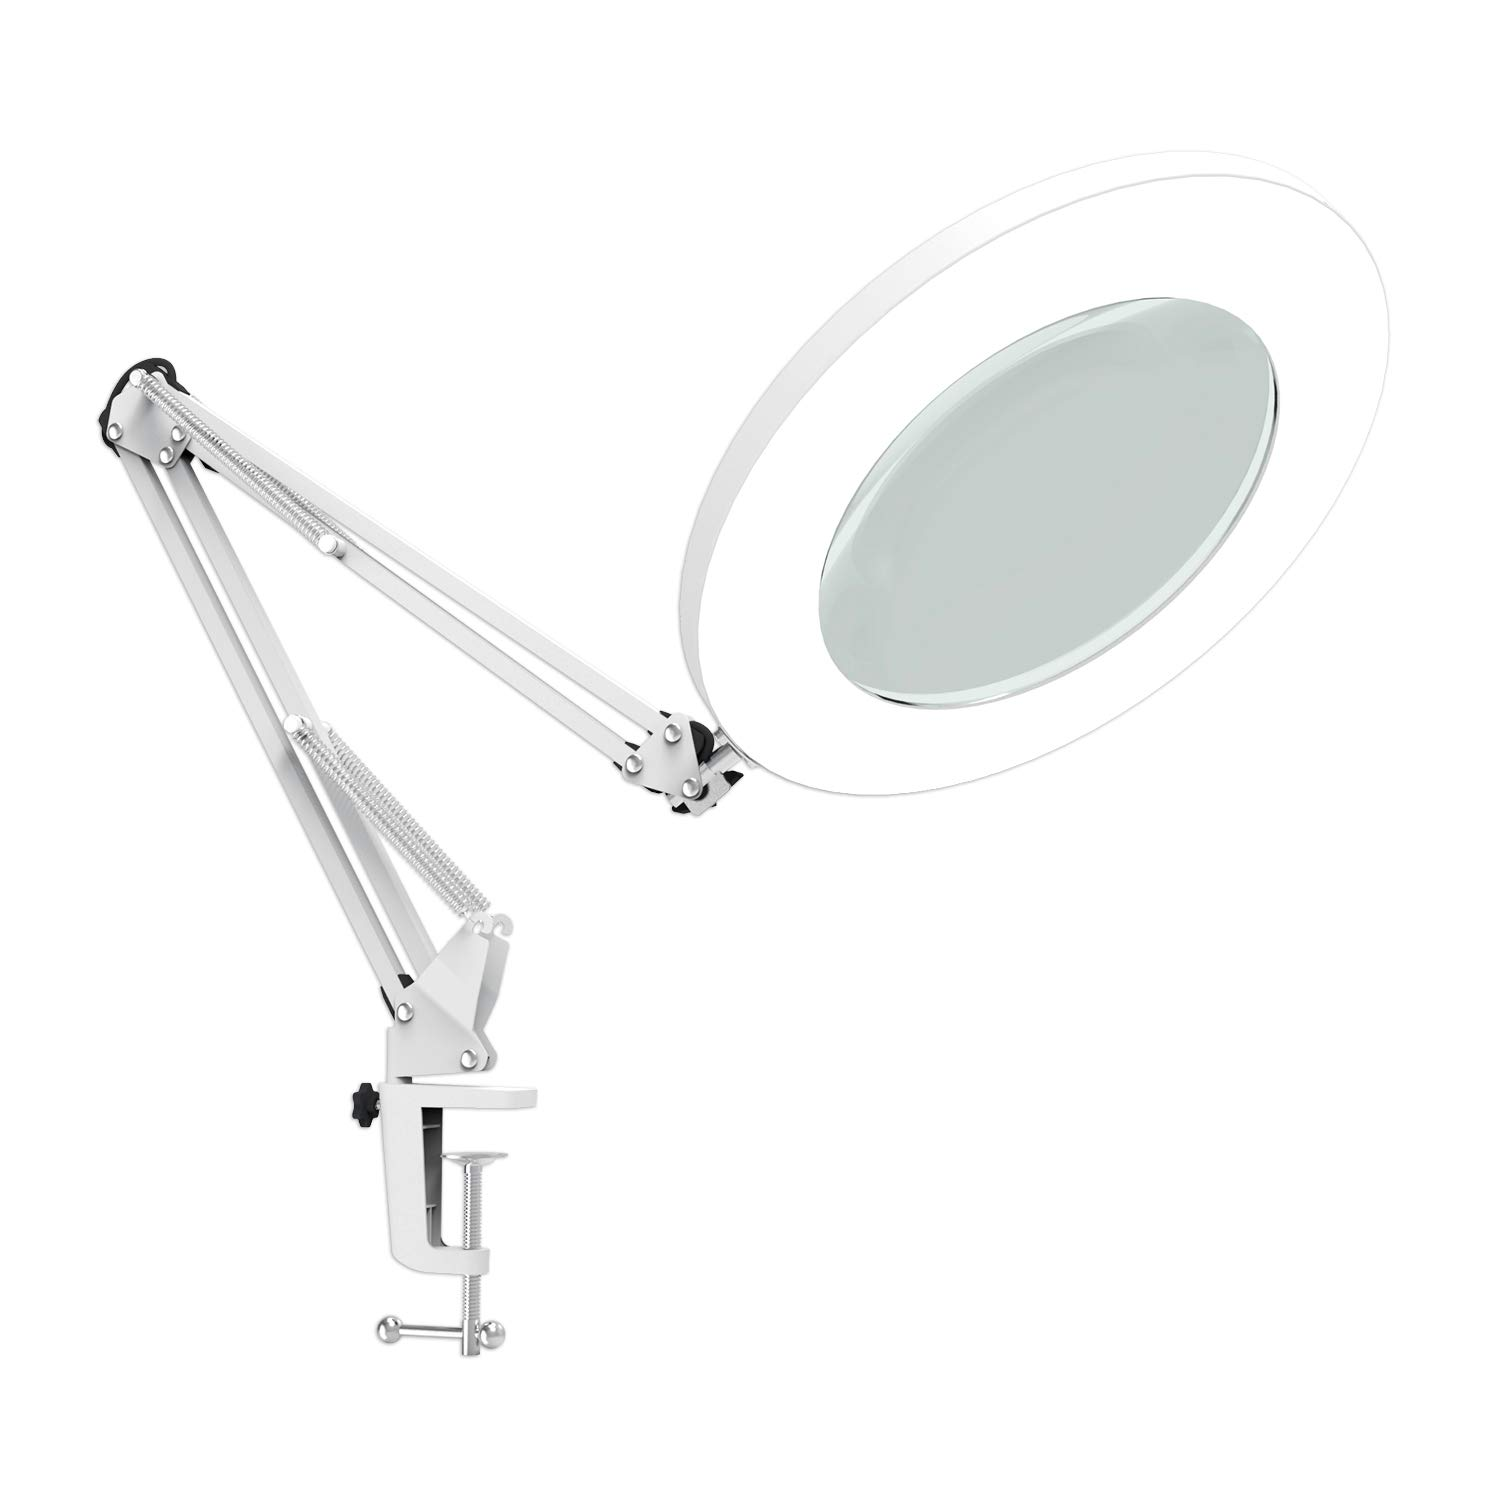 Lighting LED Magnifying Lamp with Clamp 360°Adjustable Swivel Arm ,Dimmable, Adjustable Color Temperature Utility Light for Crafts Reading Inspection and Professional Use